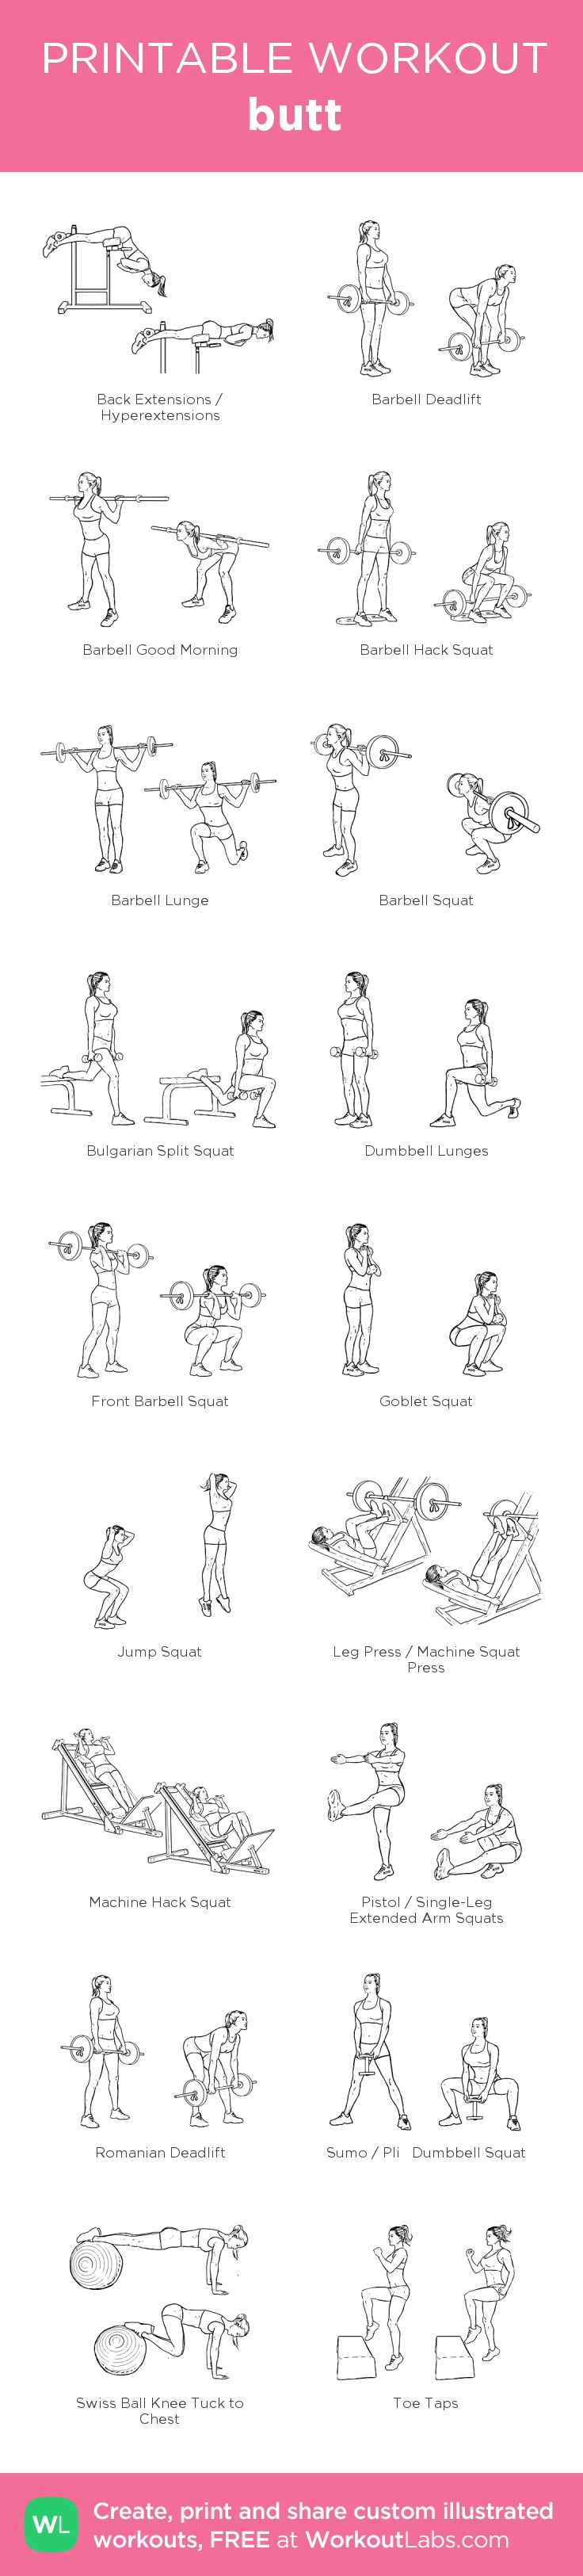 butt:my visual workout created at WorkoutLabs.com • Click through to customize and download as a FREE PDF! #customworkout